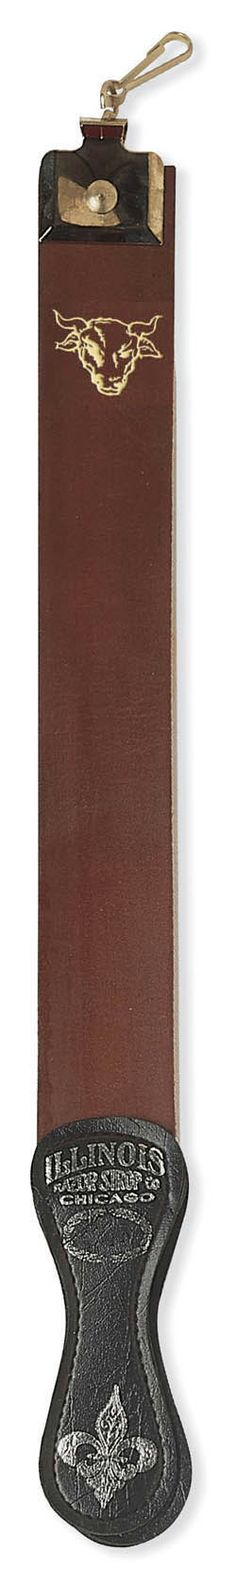 "1907 2.5"" x 23"" Top grain cowhide Razor Strop. Handcrafted, exceptional quality made in the United States of America. Complete with sharpening canvas and swivel.  http://www.frommbeauty.com/shop/product/"